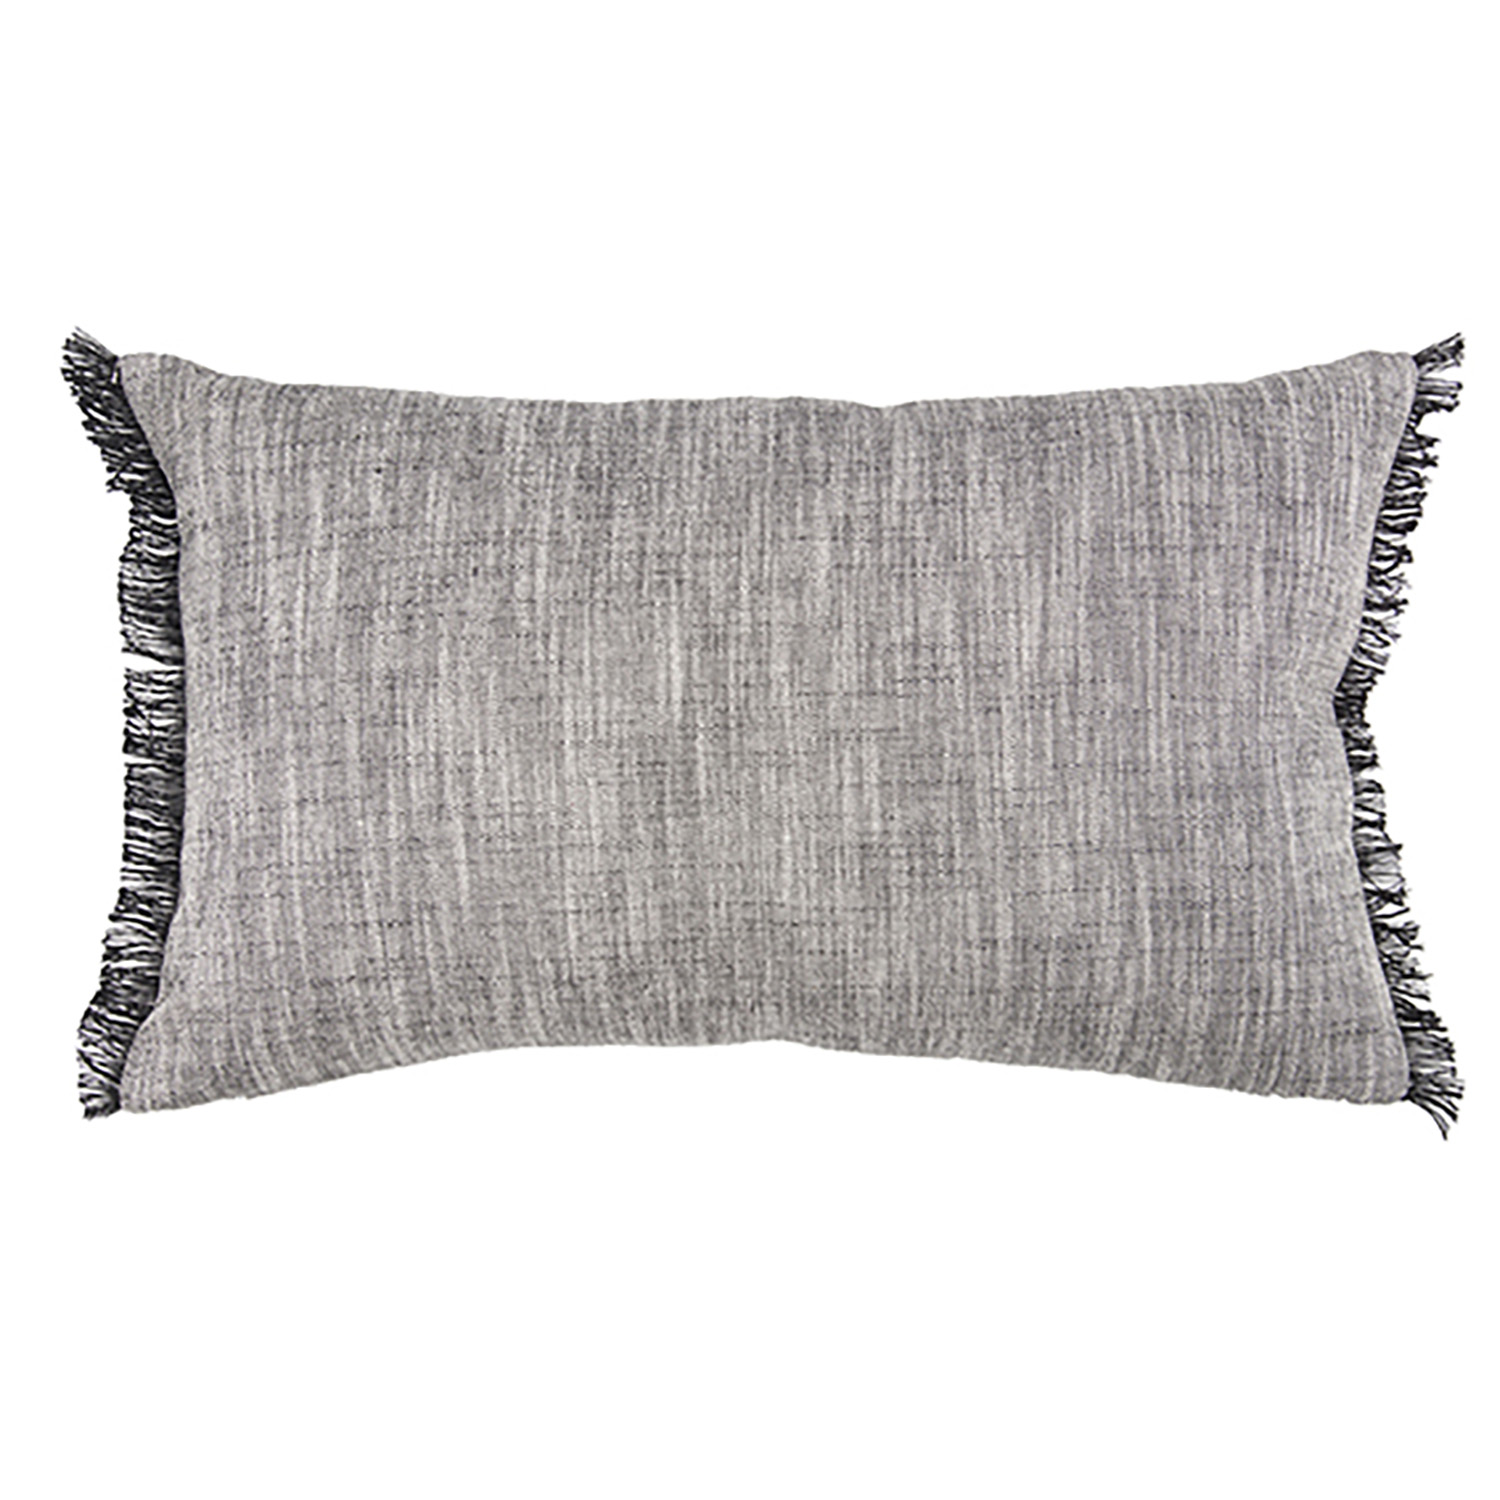 Coussin  en coton gris 30 x 50 (photo)